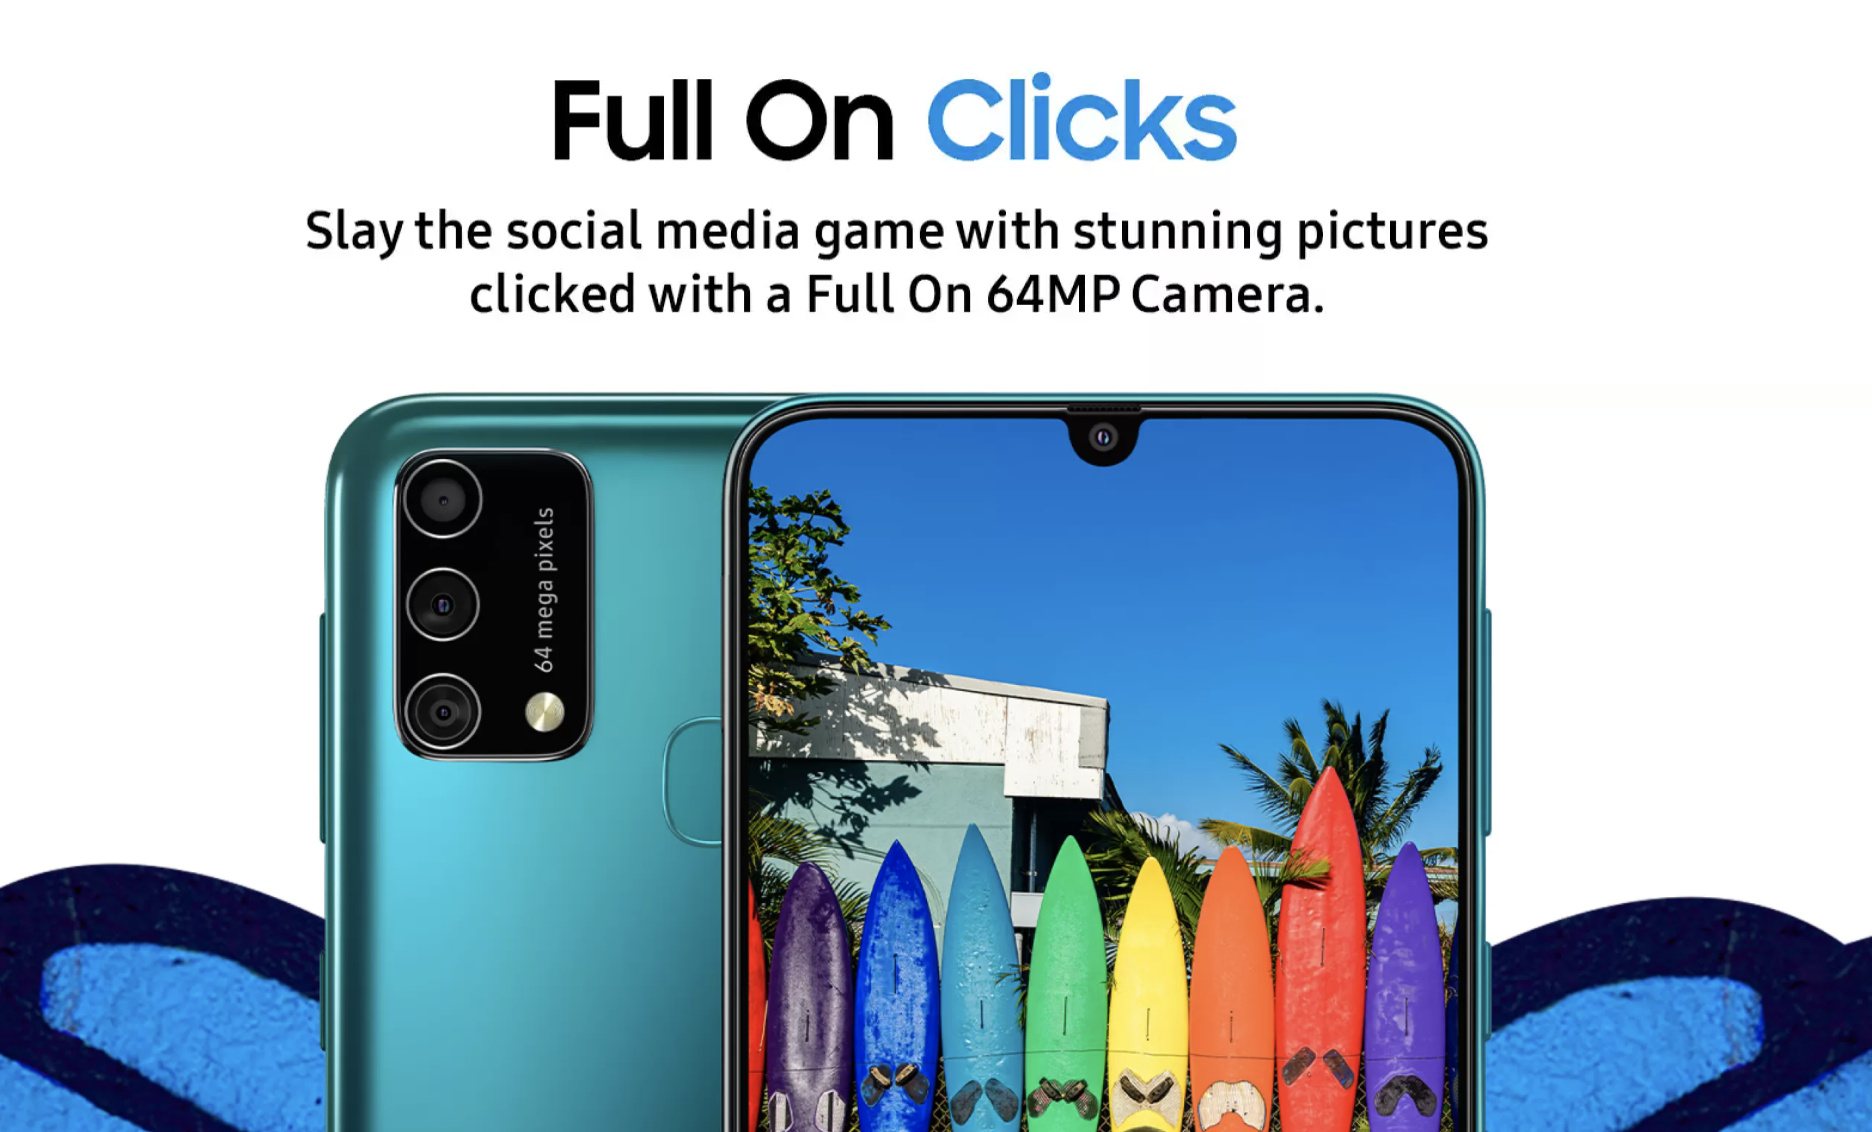 Samsung Galaxy F41 Triple Camera Samsung Galaxy F41 To Come With 64mp Triple Camera Reveals Flipkart Listing Times Of India